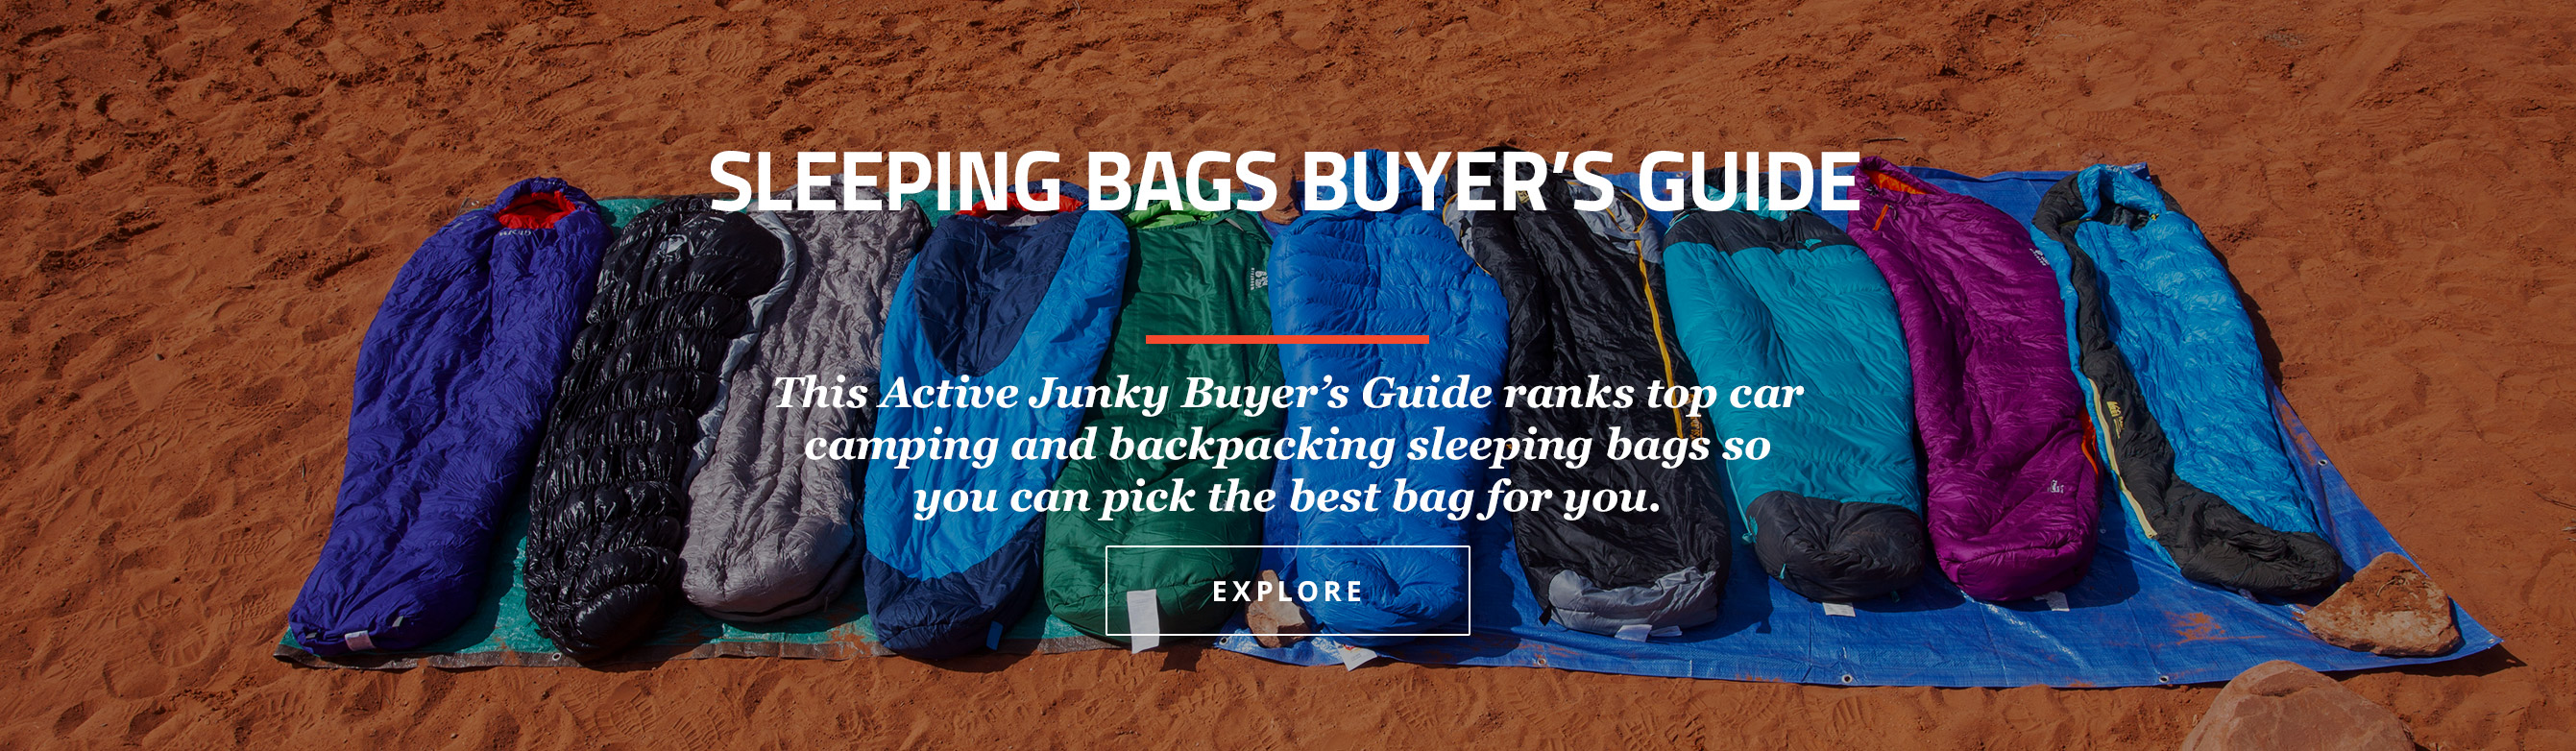 Sleeping Bags Buyer's Guide